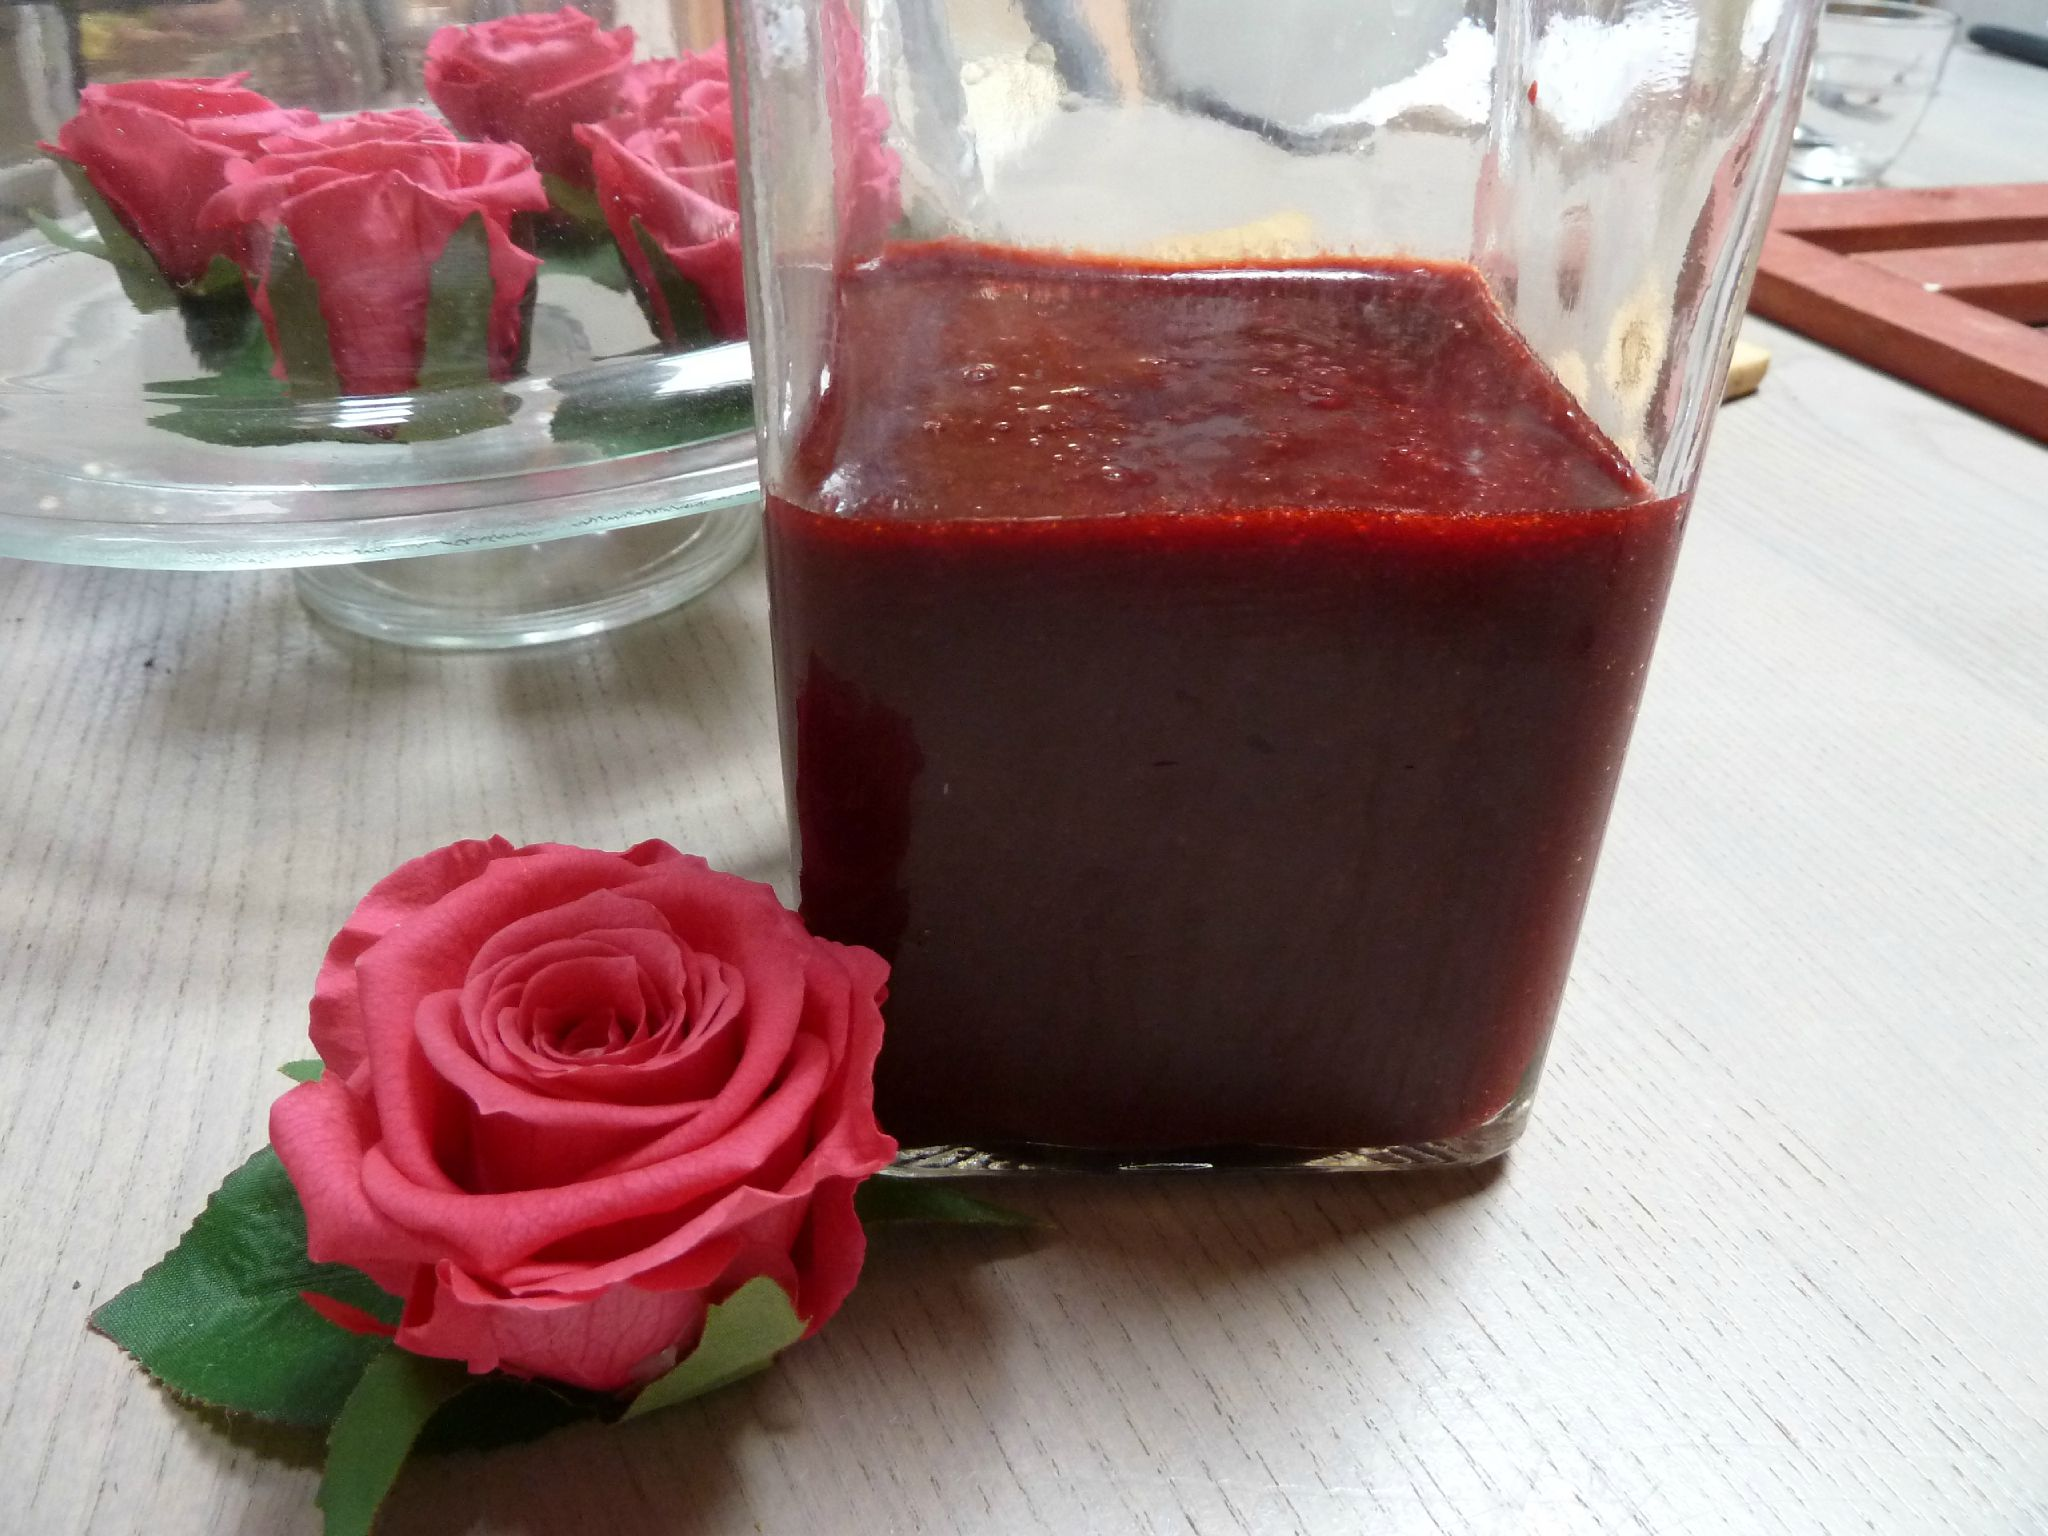 18-coulis mures et framboises www.passionpotager.canalblog.com